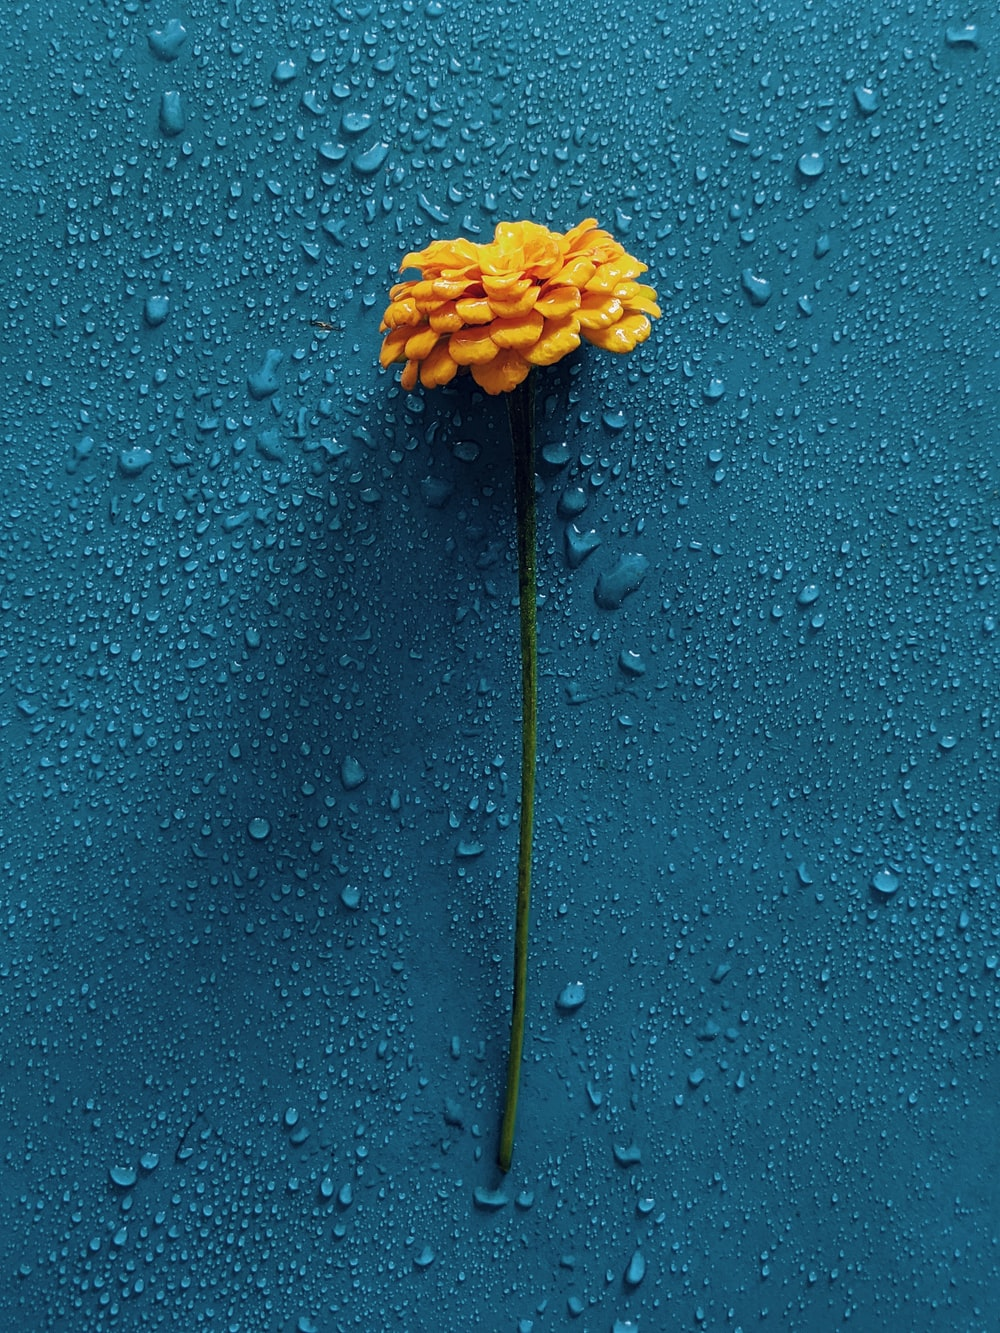 yellow flower on blue surface